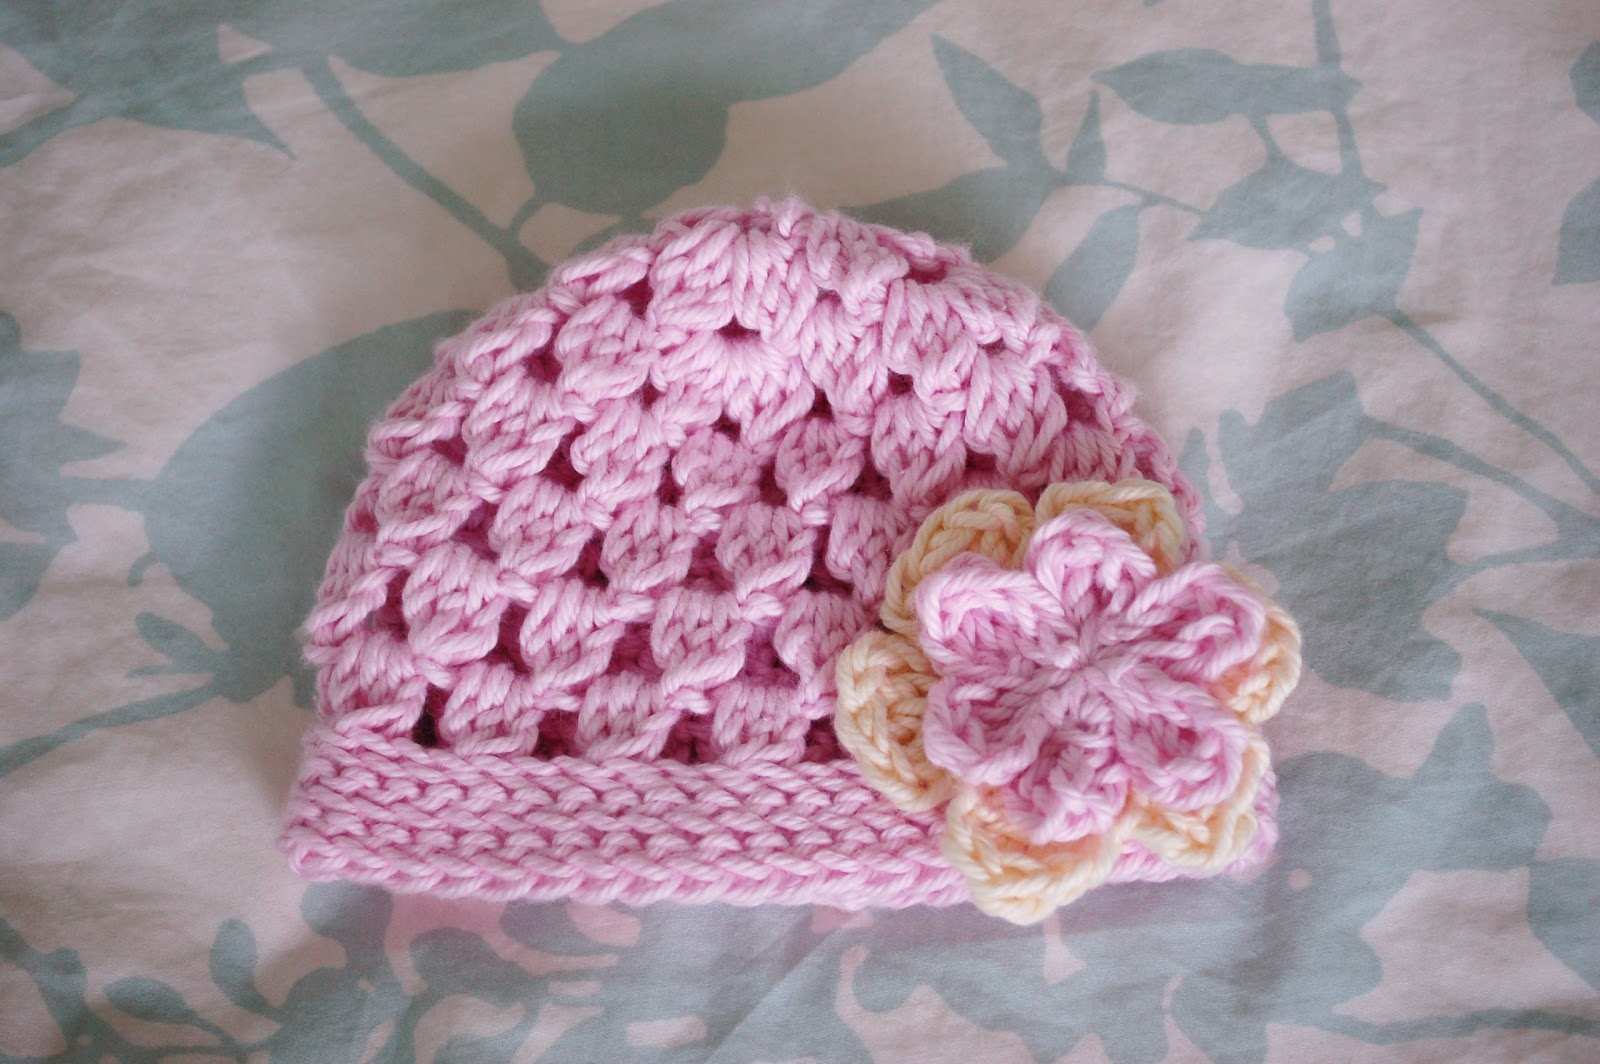 Crochet Beanie Hat Pattern For Babies : Free Crochet Cluster Hat Newborn Pattern